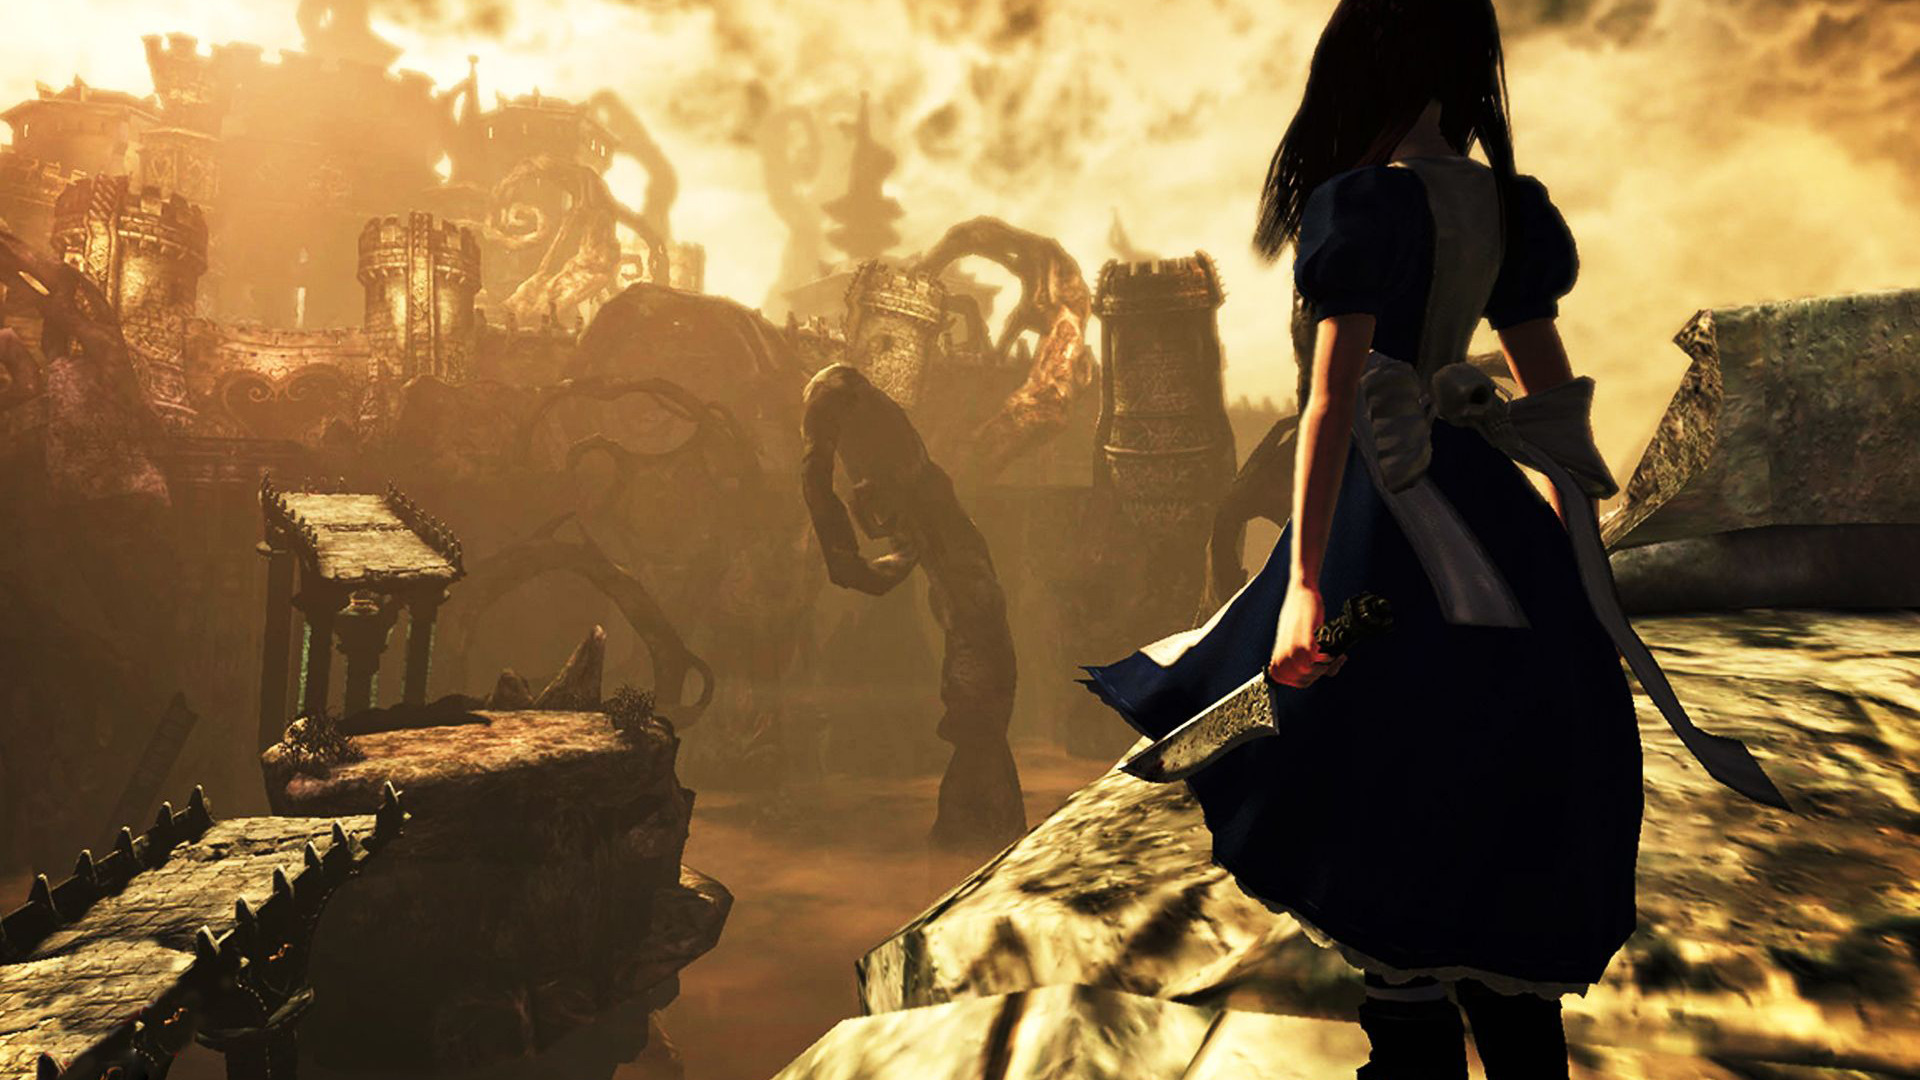 30 Cute Alice Madness Returns Wallpapers In High Quality Jowita